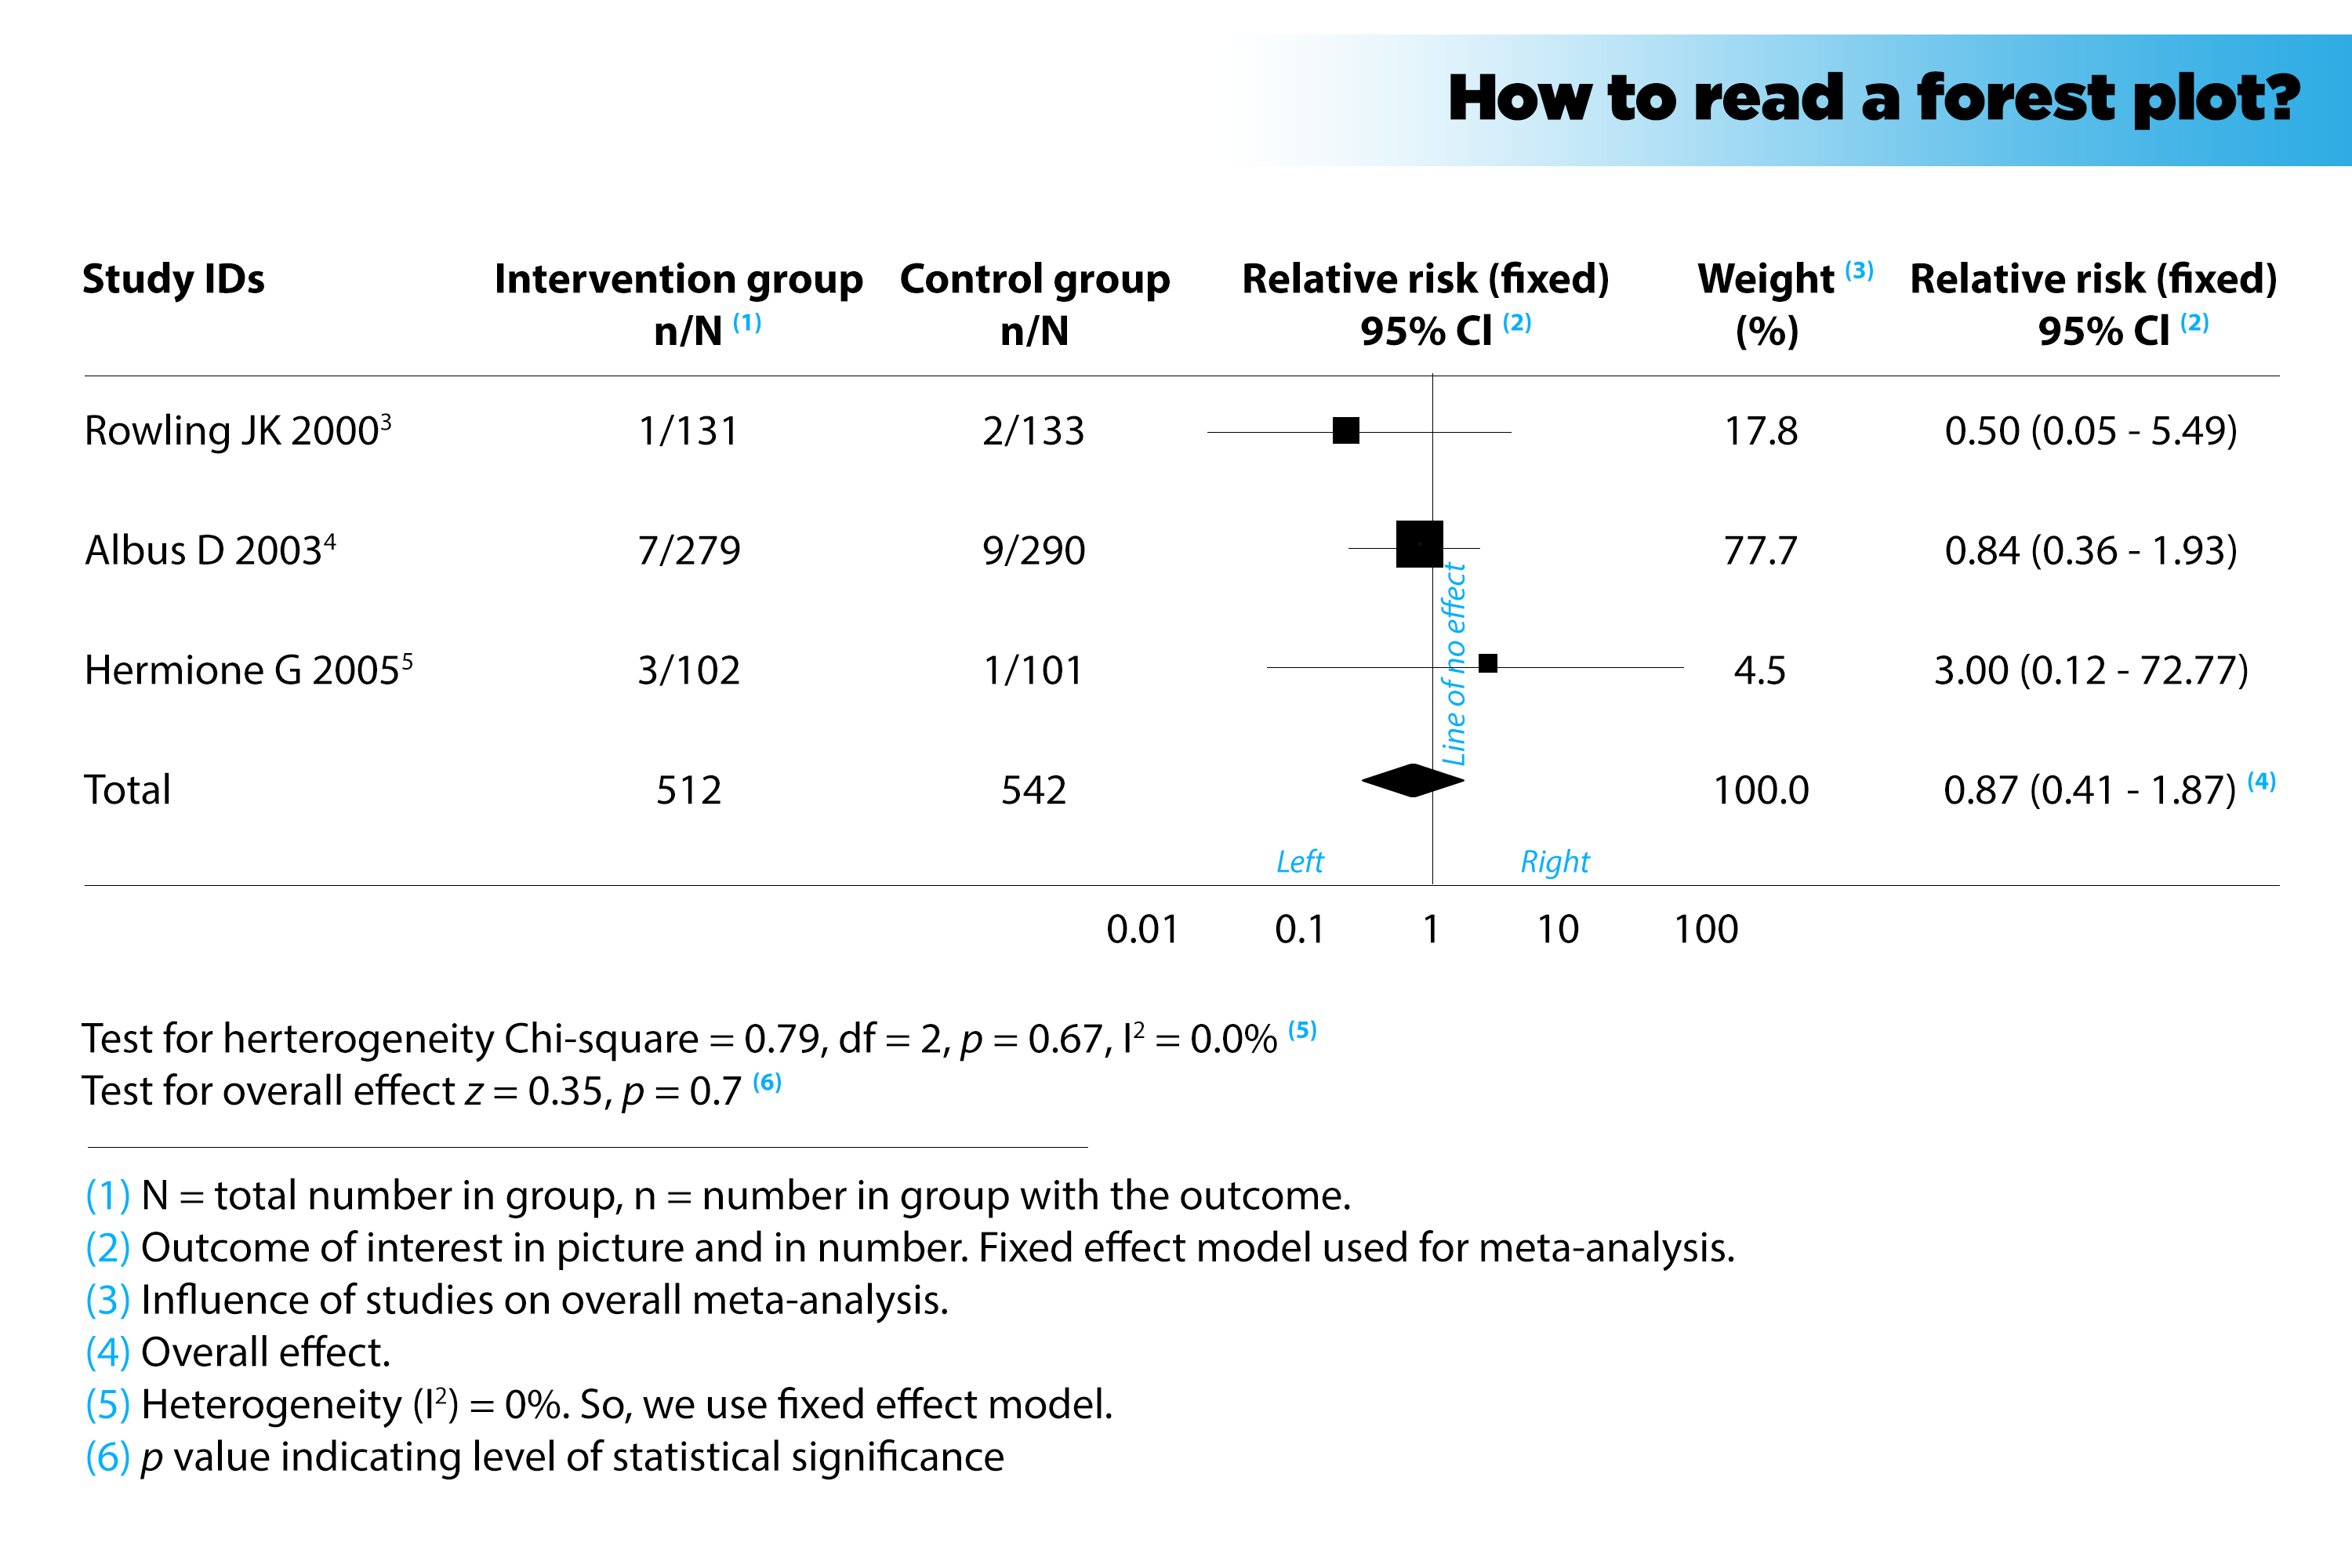 How to read a forest plot 2